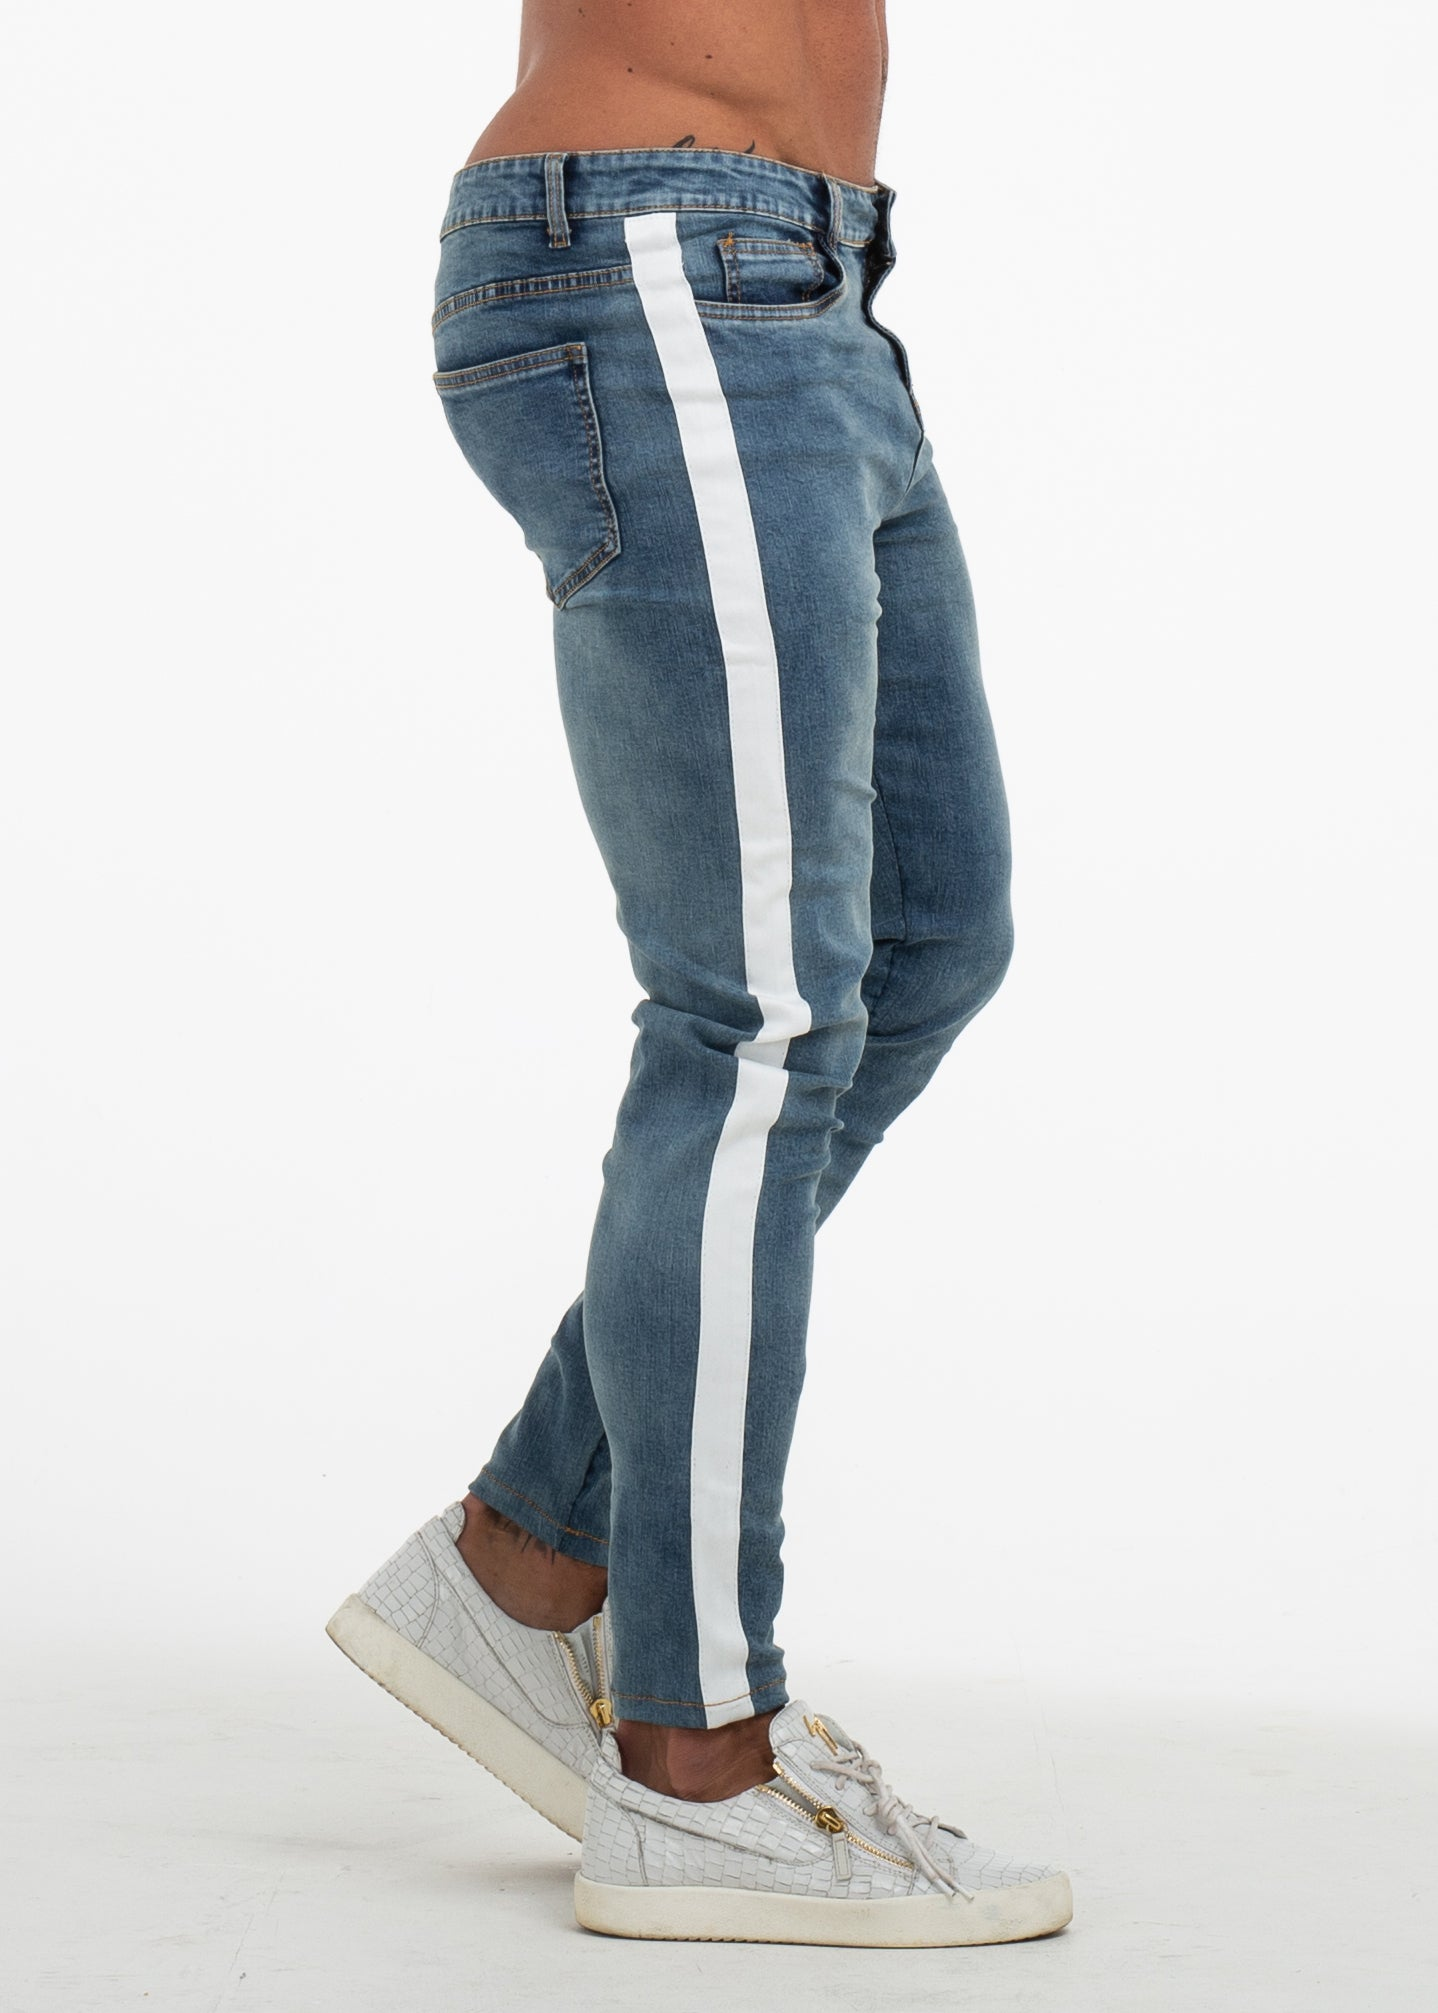 LOWKEY JEANS MEDIUM AGED BLUE